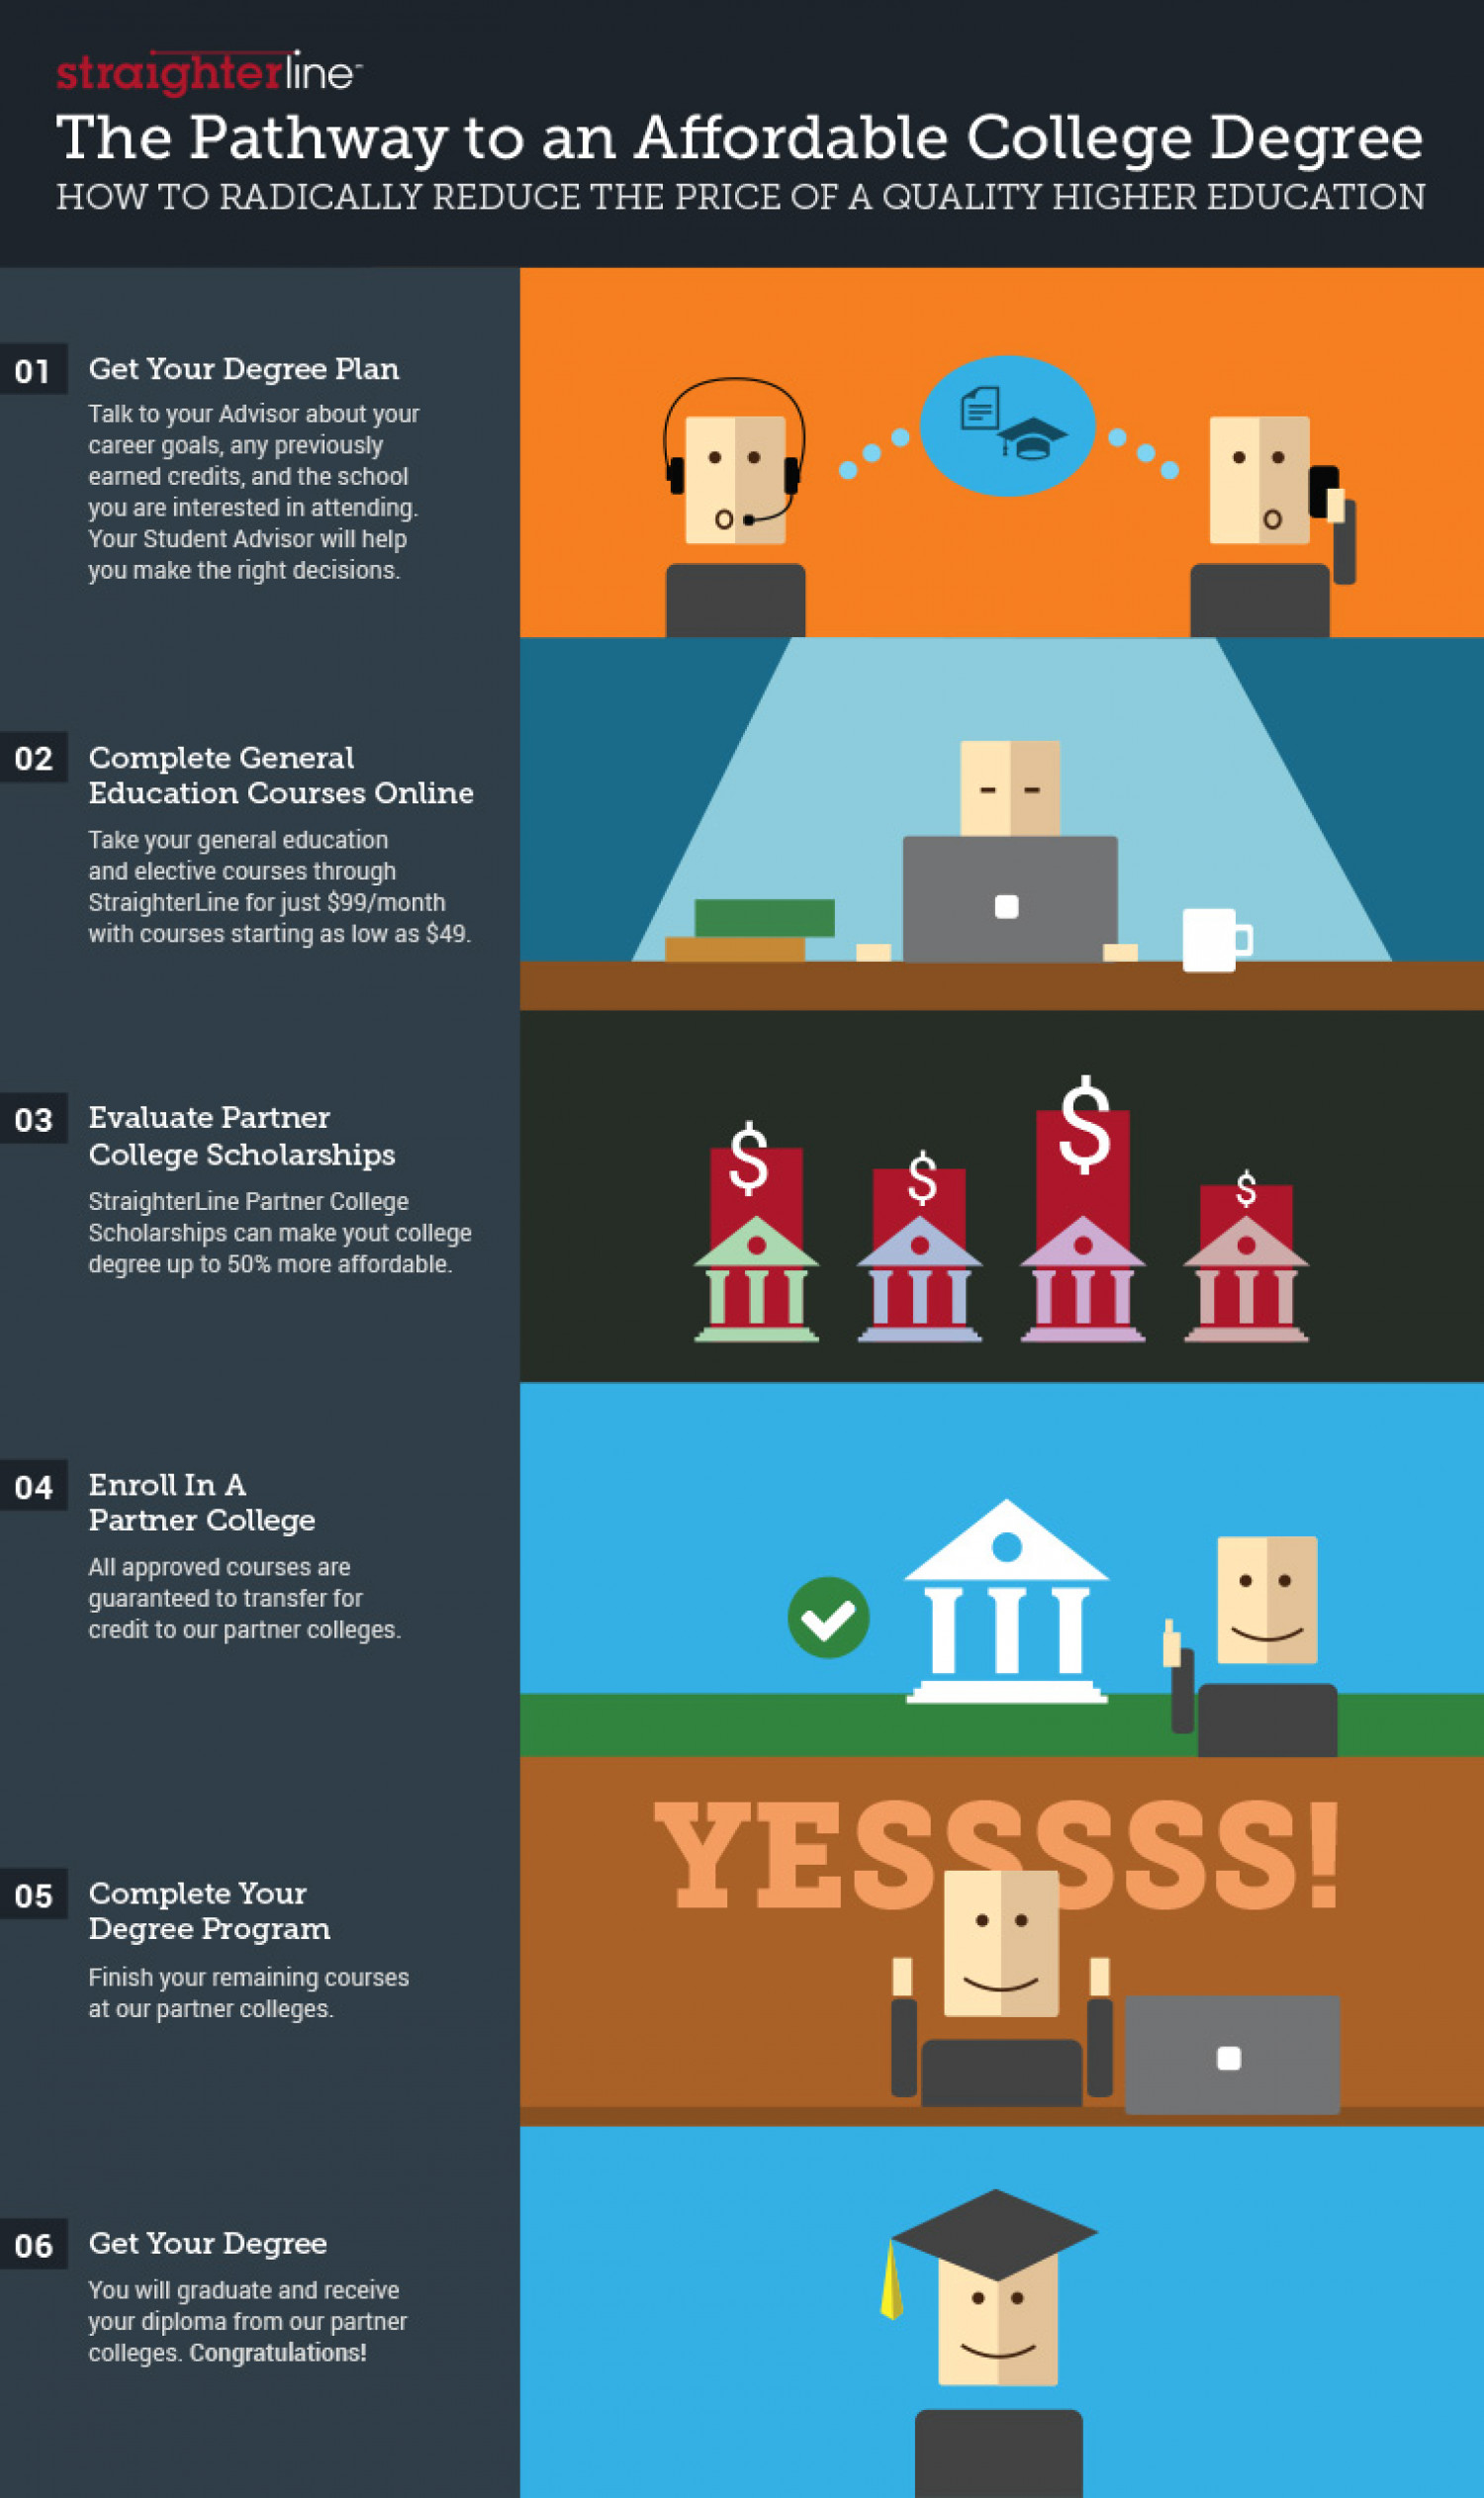 The Pathway to an Affordable College Degree Infographic